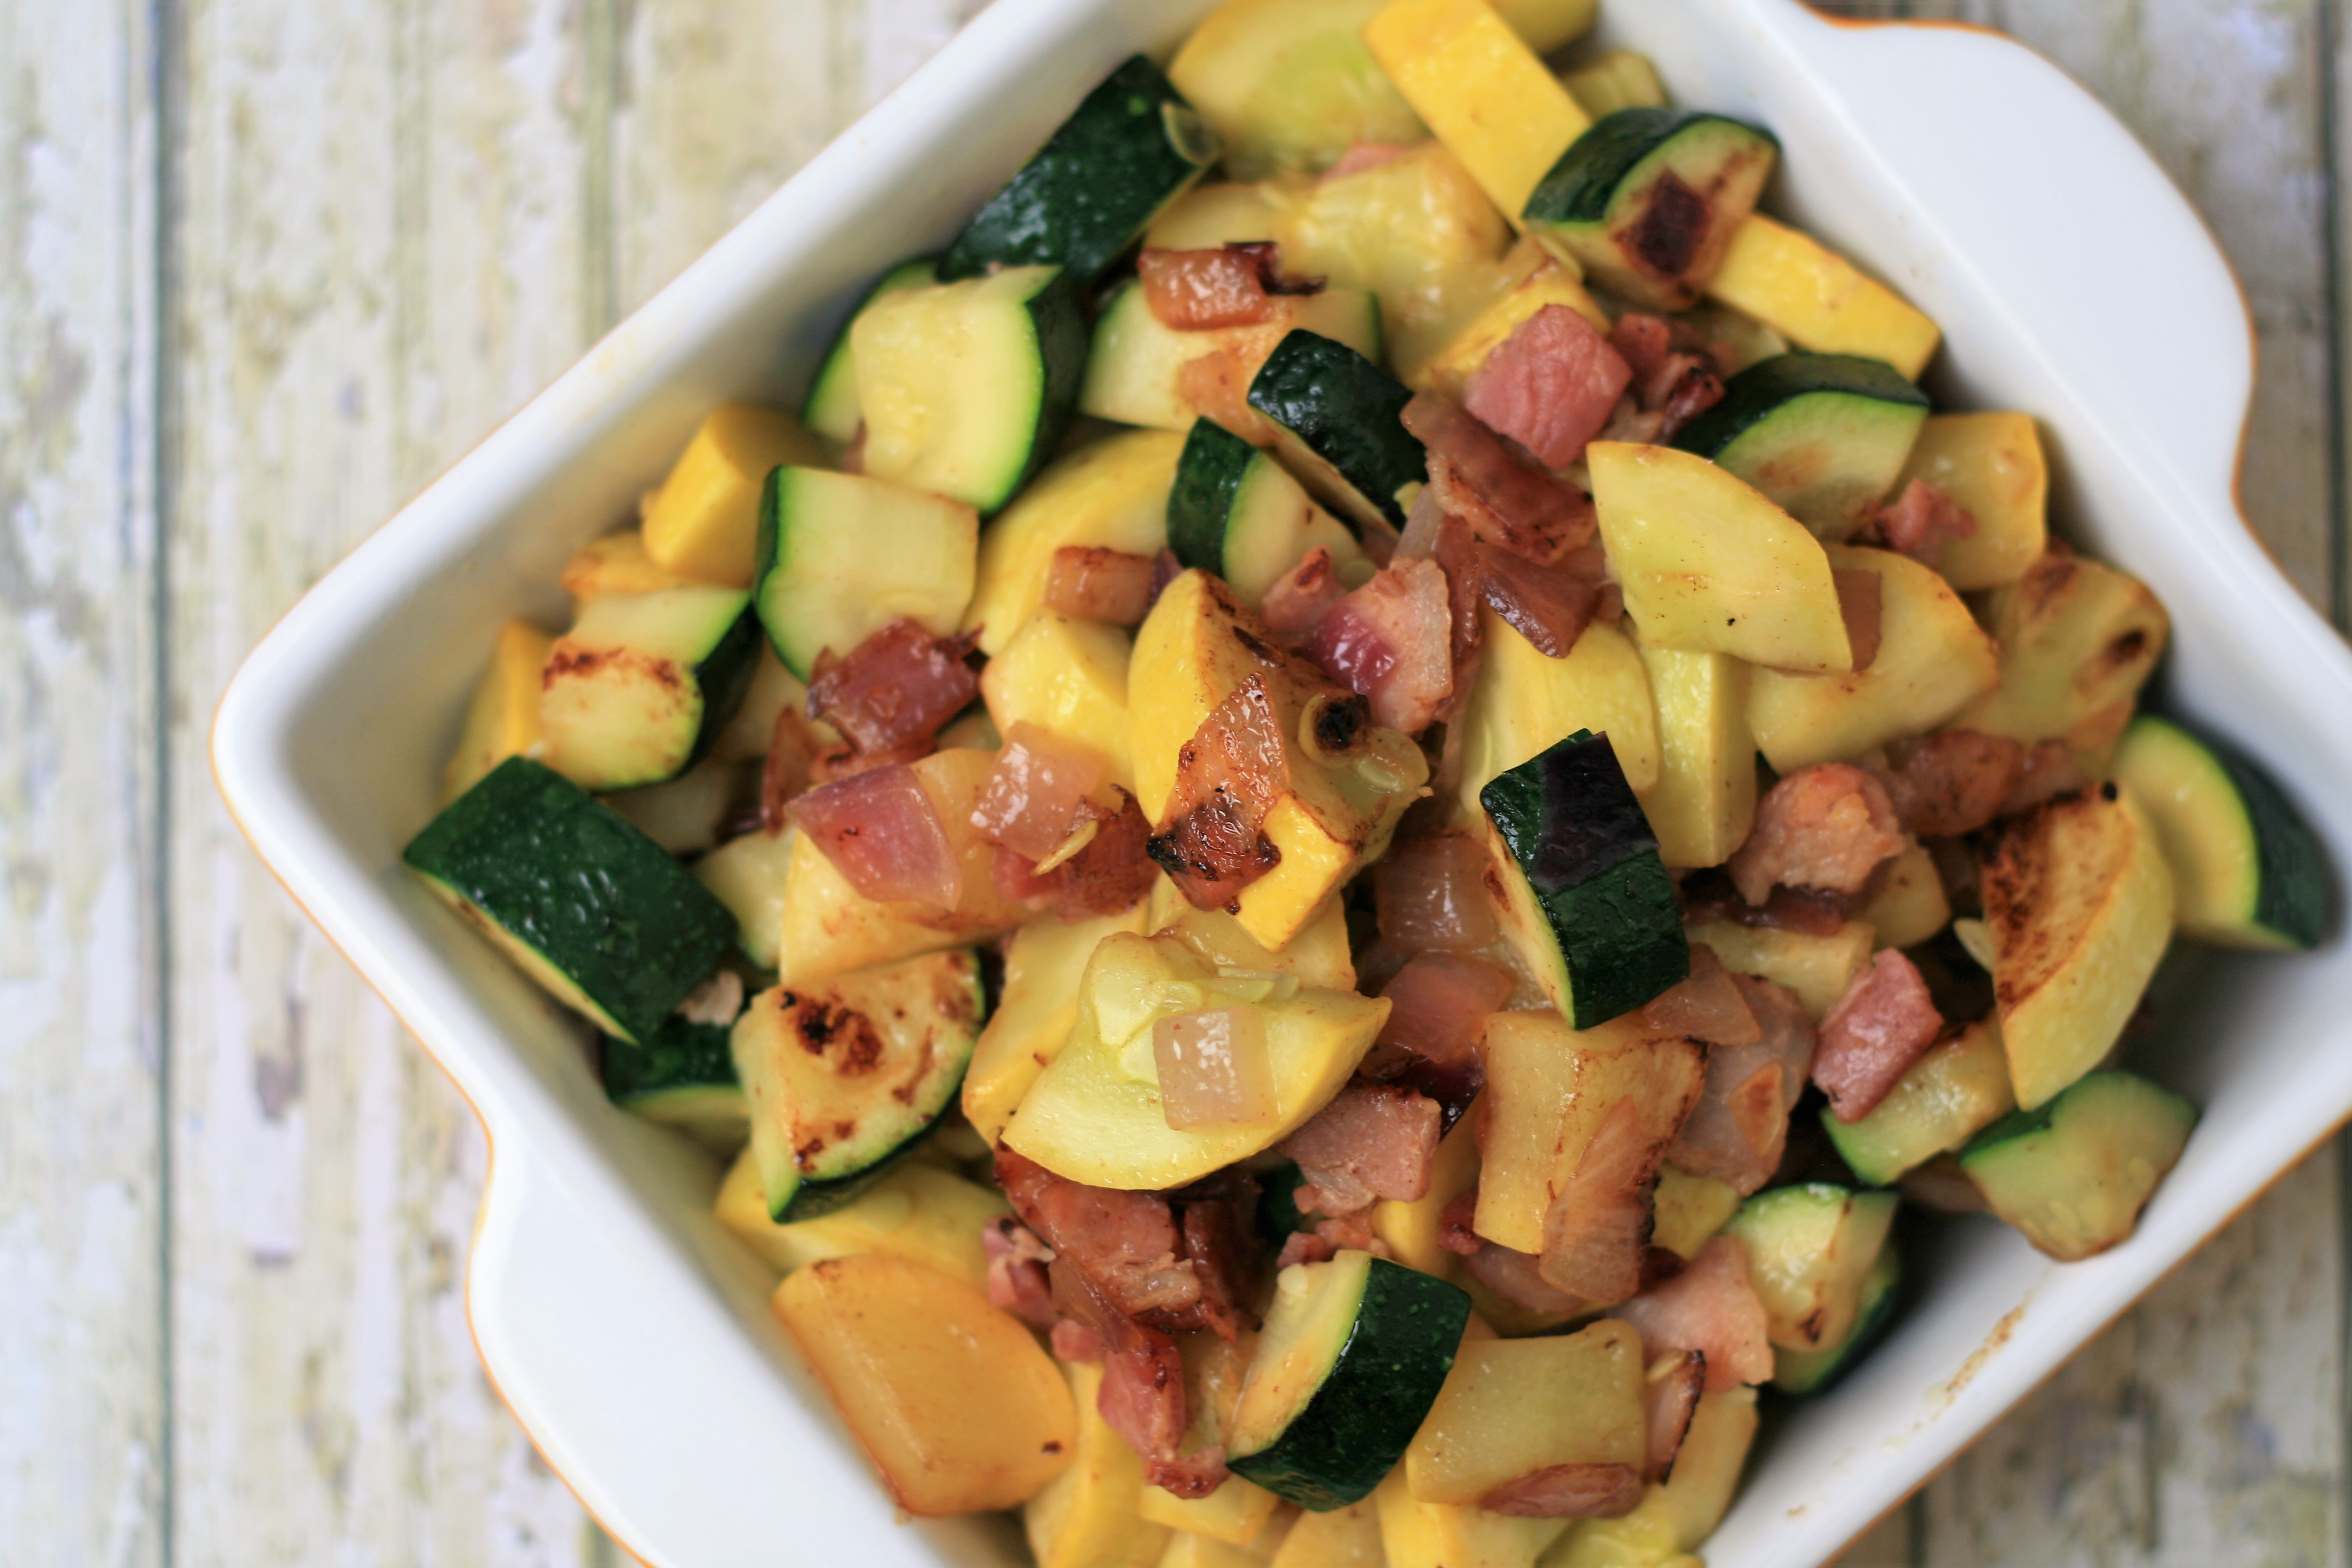 Summer Squash Saute with Bacon image